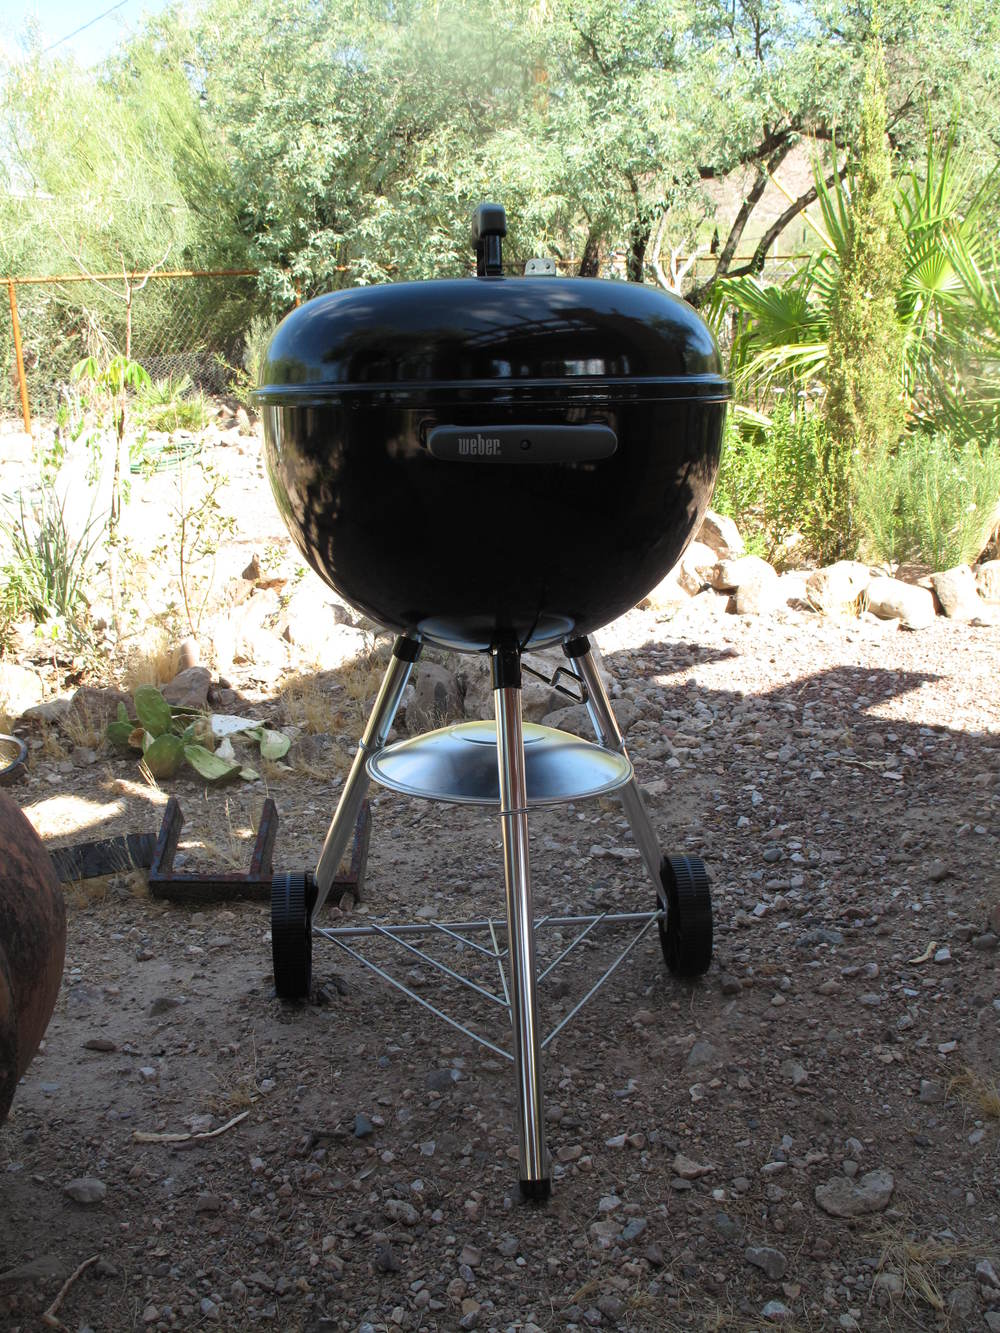 The Wee Weber. Note the ash tray is upside down so it does not hold water when I'm not using it.